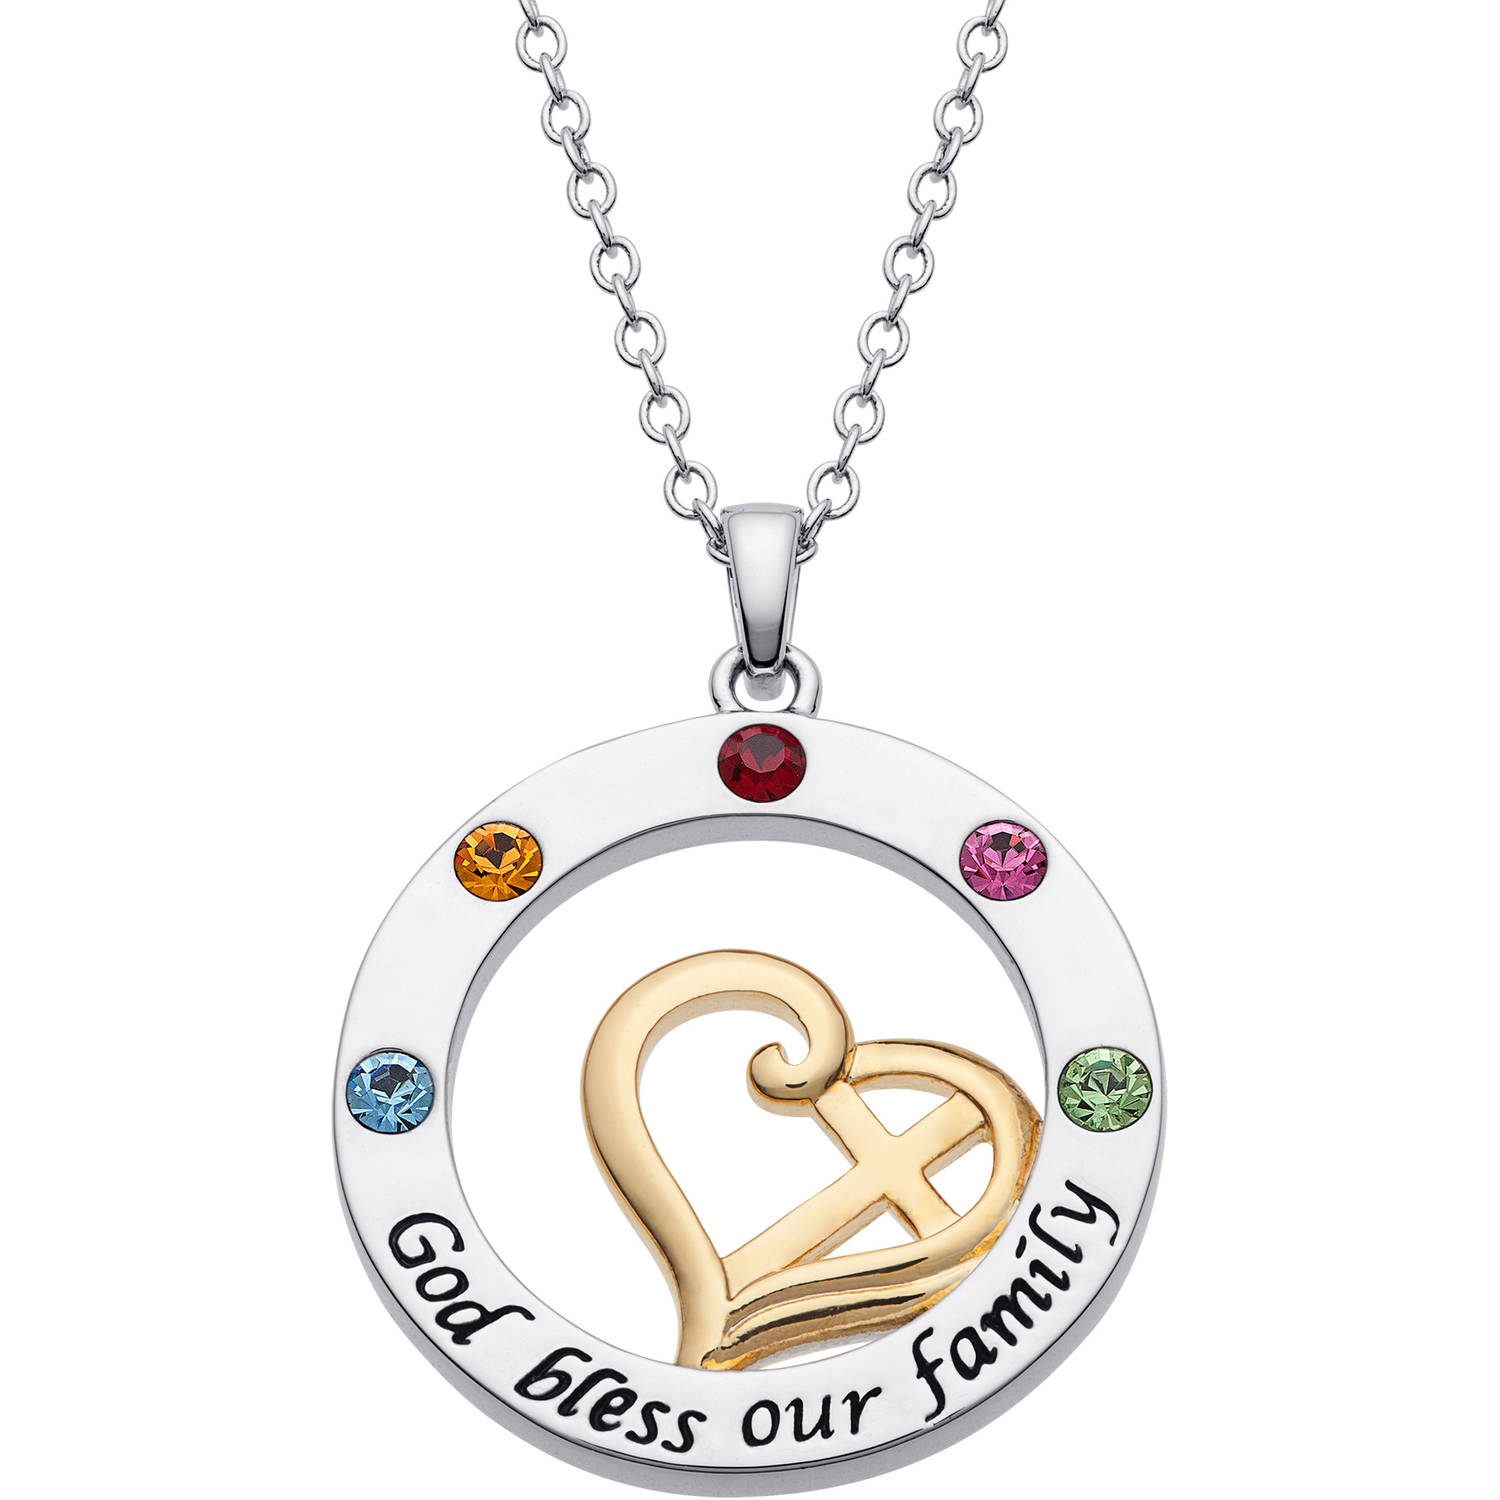 """Personalized Mother's Two-Tone Heart and Cross """"God Bless our family"""" Circle Birthstone Pendant"""